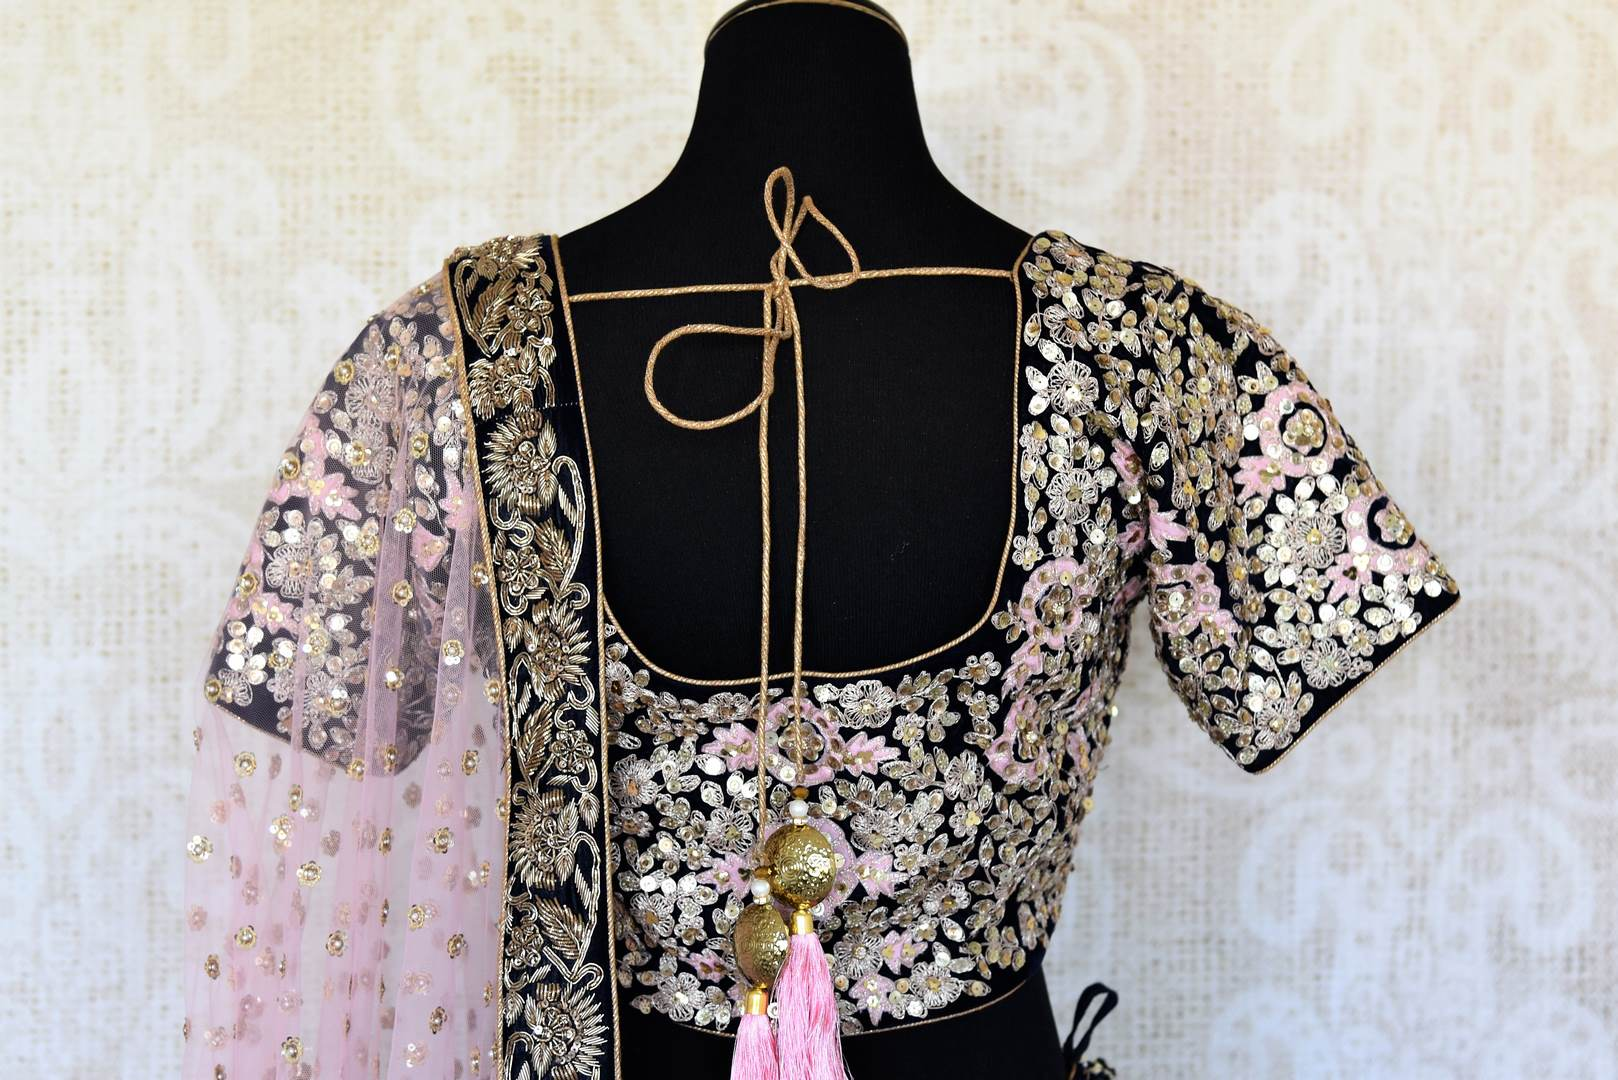 Buy dark blue embroidered velvet lehenga online in USA with pink dupatta. The lehenga is perfect for rich Indian ethnic look at weddings. Make your Indian clothing collection exquisite with beautiful Indian designer wedding lehengas available at Pure Elegance clothing store in USA or shop online.-blouse back